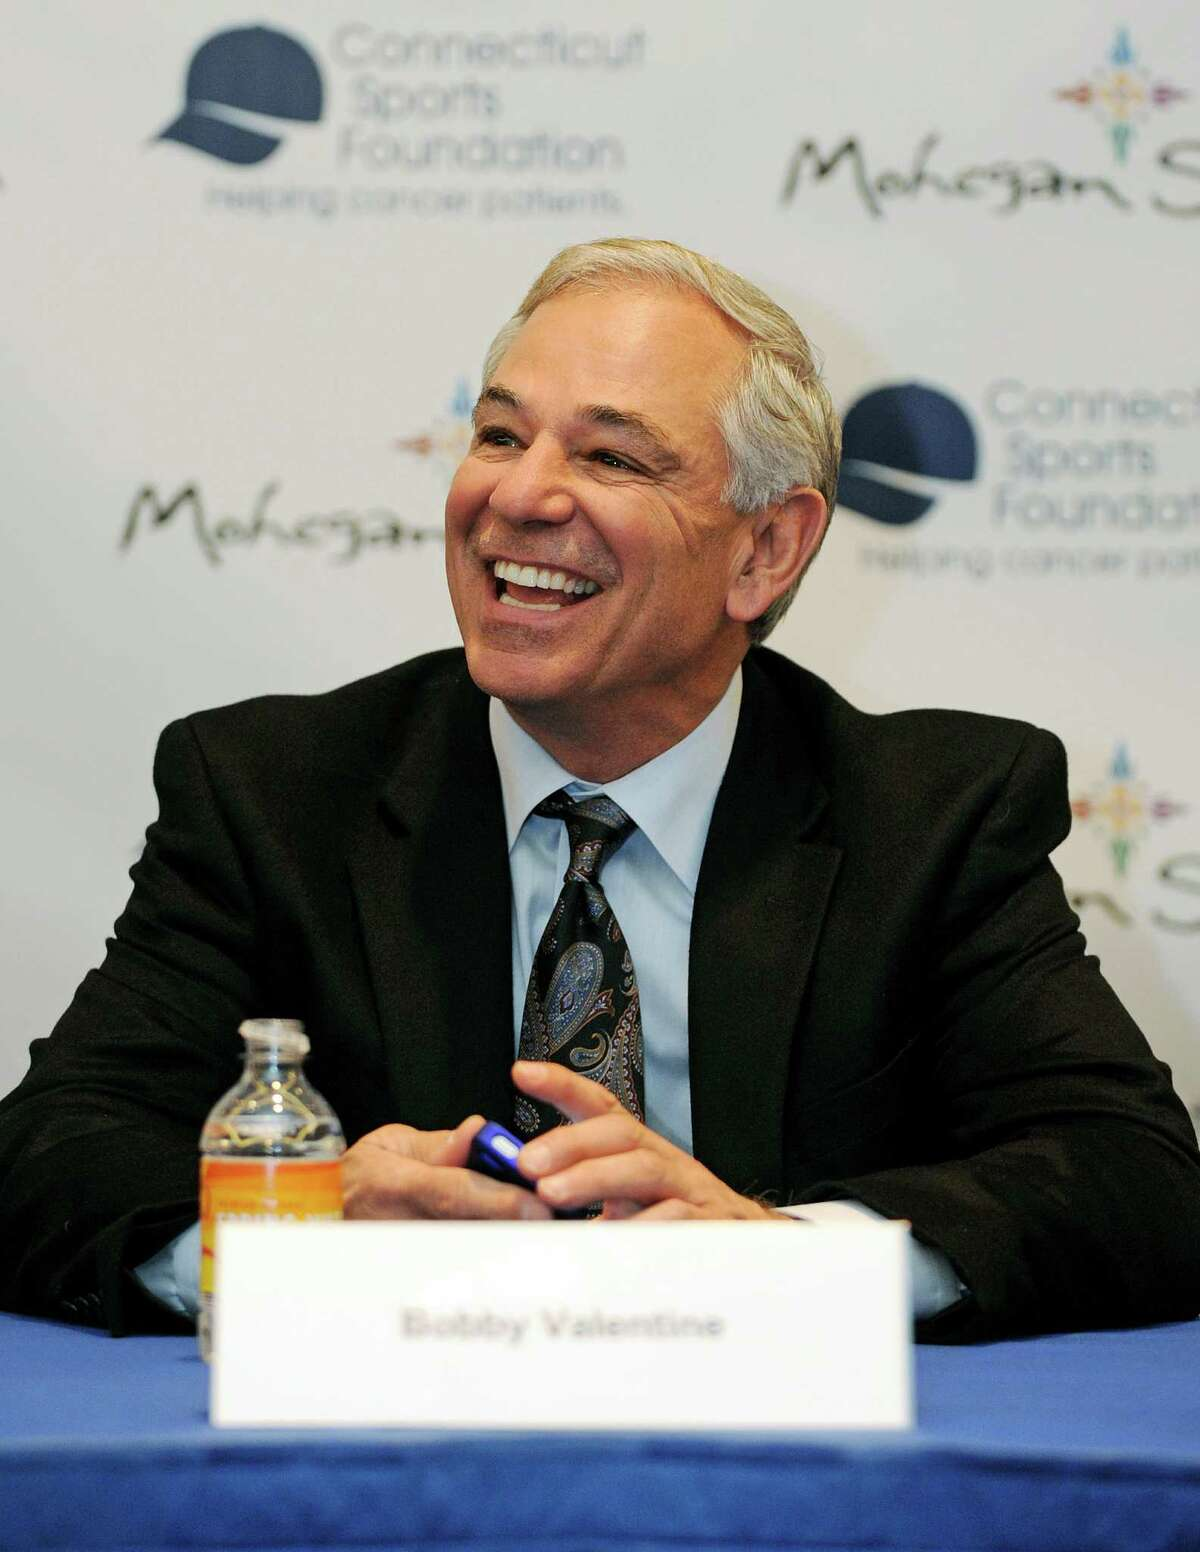 Stamford's Bobby Valentine has kept busy since leaving the Red Sox. His latest endeavor is as a Major League Baseball contributor to NBC Sports Radio.